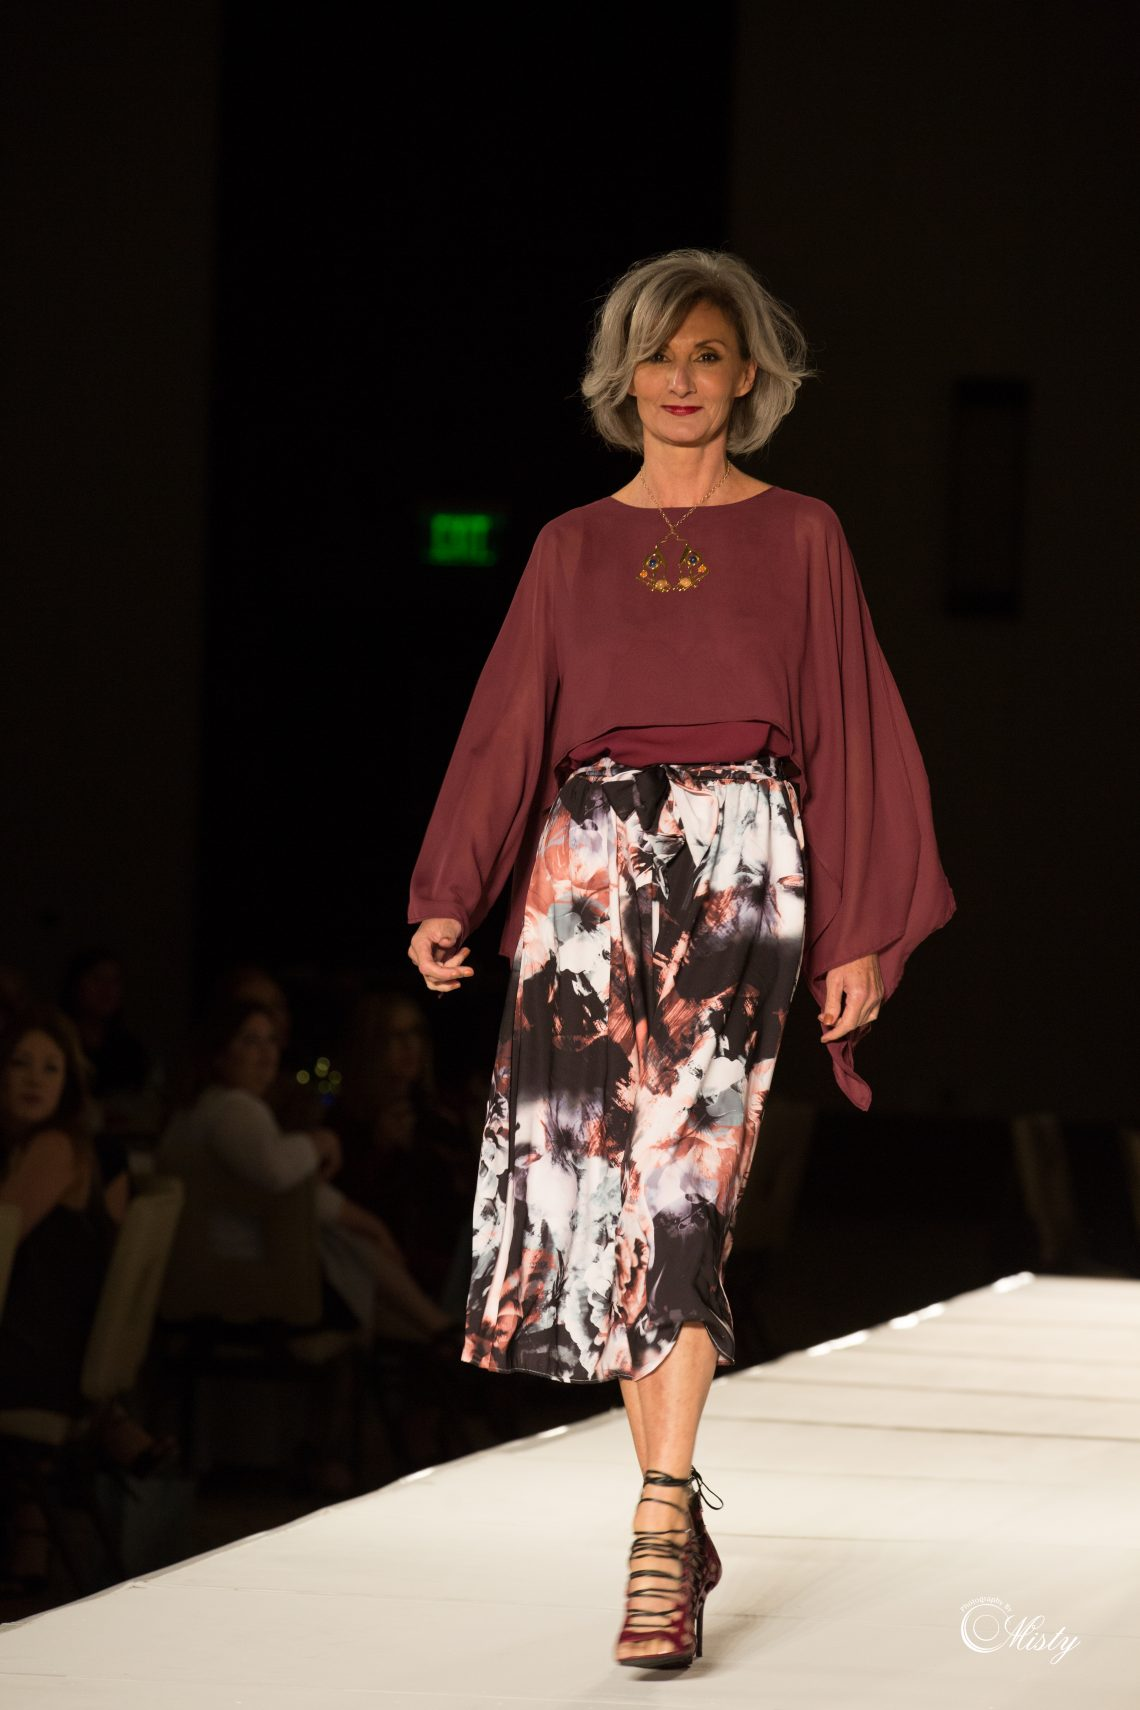 Fashion Show Benefiting Hope's Door New  Beginning Center